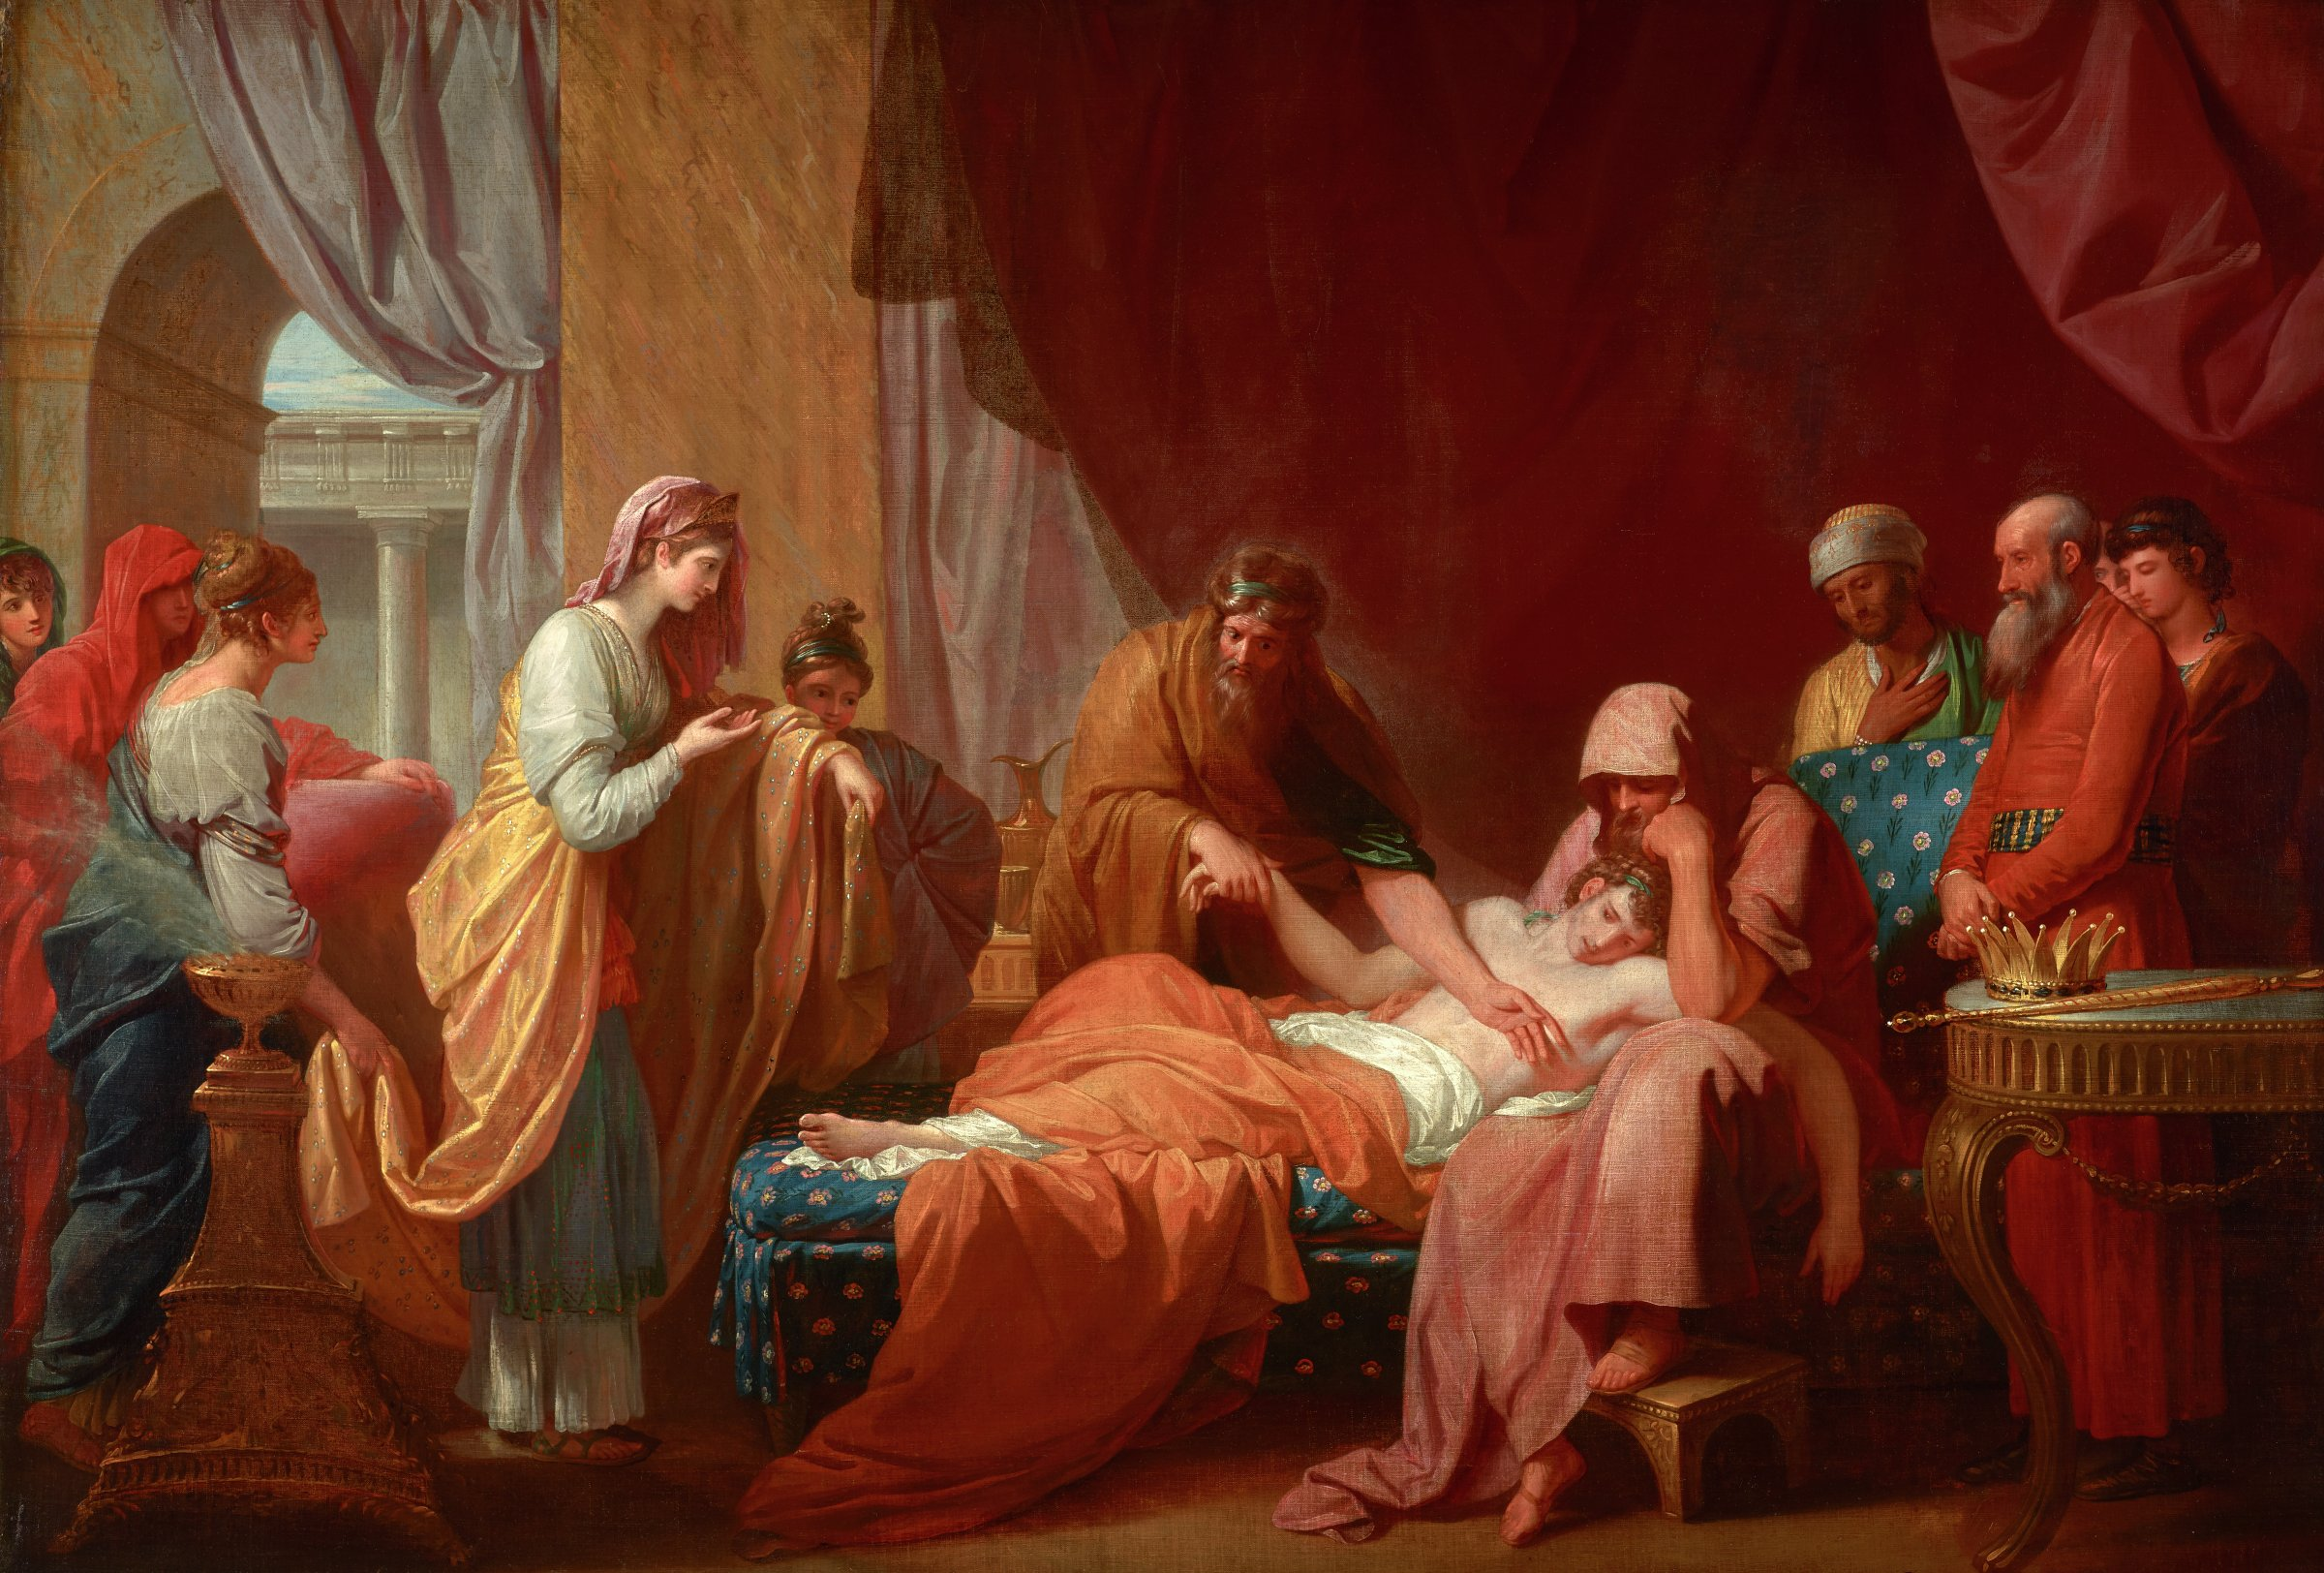 Erasistratus the Physician Discovers the Love of Antiochus for Stratonice, Benjamin West, oil on canvas